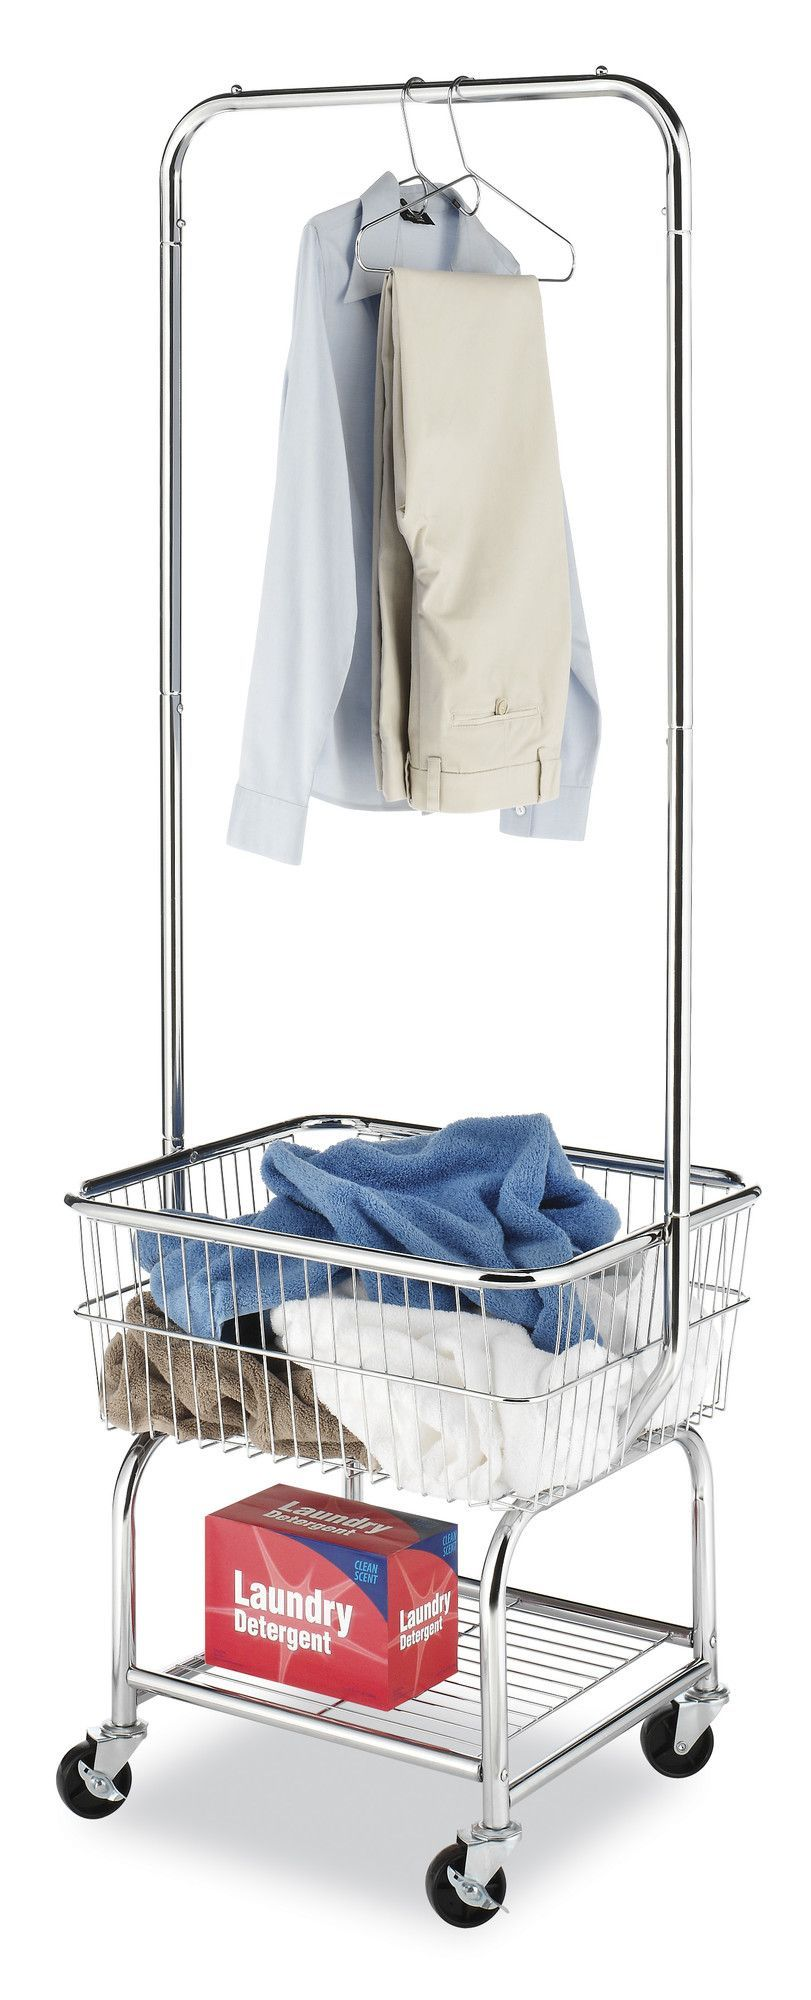 Commercial Laundry Butler Free Standing Drying Rack Commercial